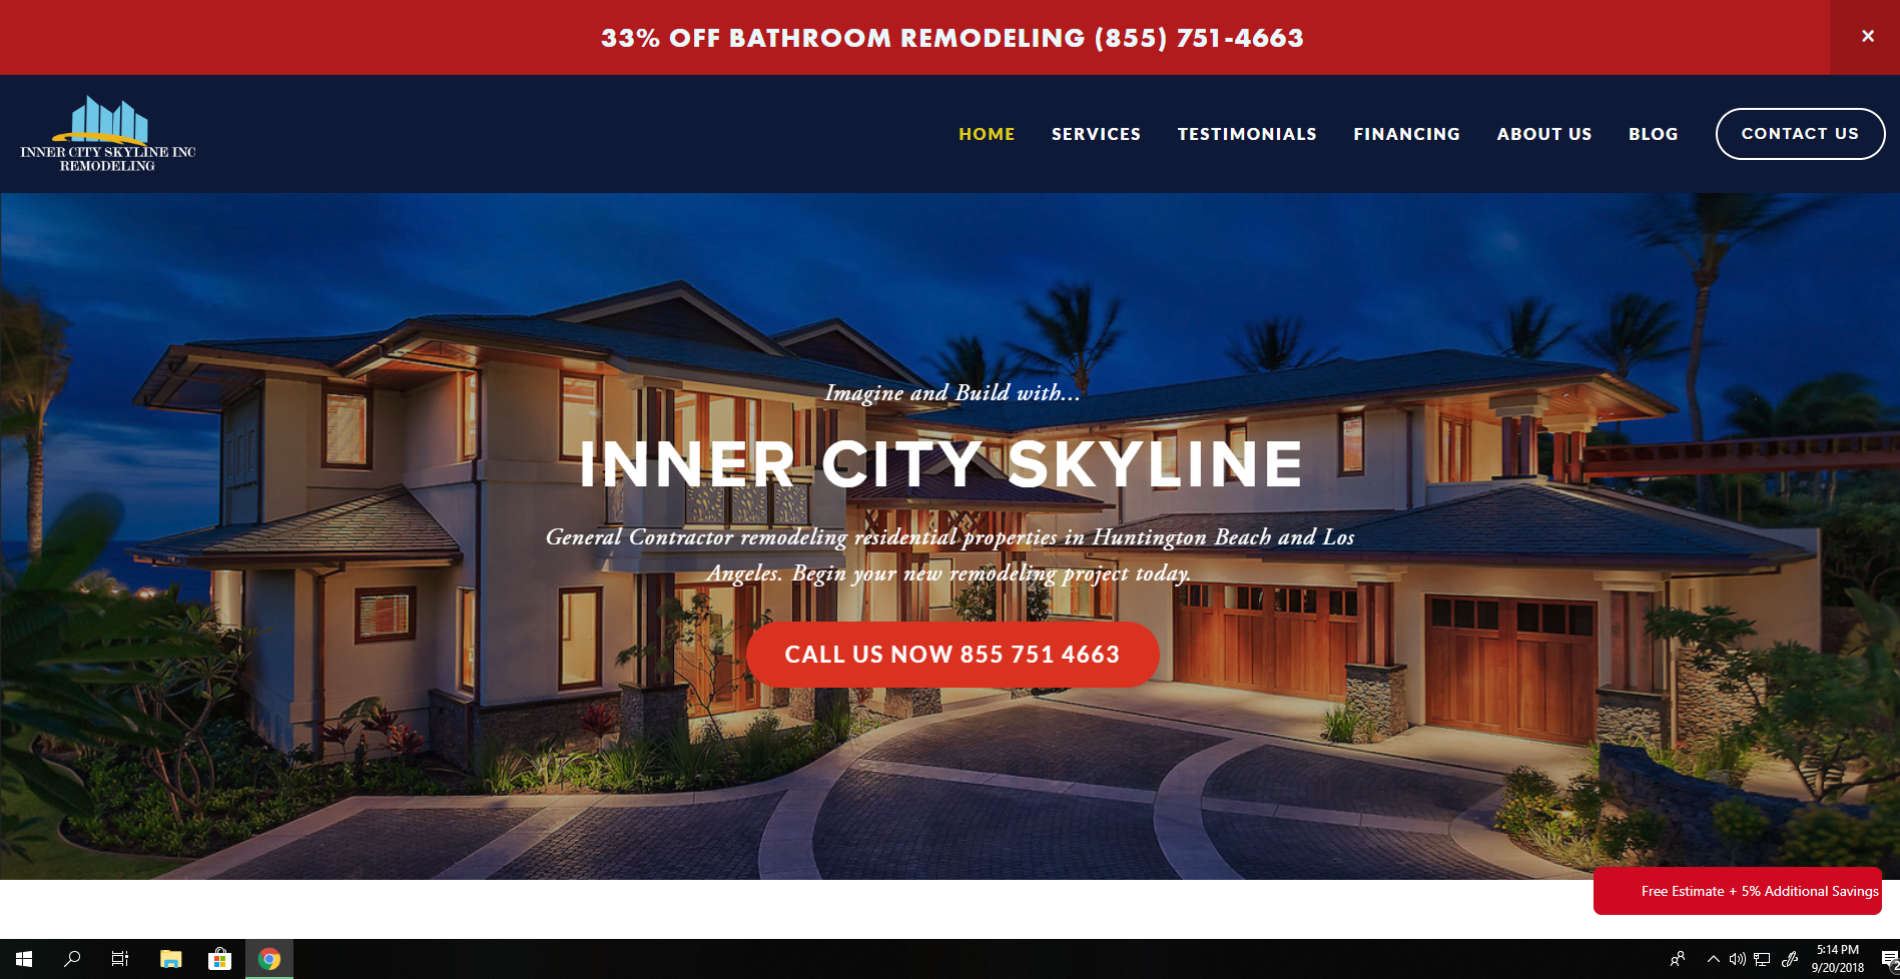 Inner City Skyline Remodeling and Construction Case Study